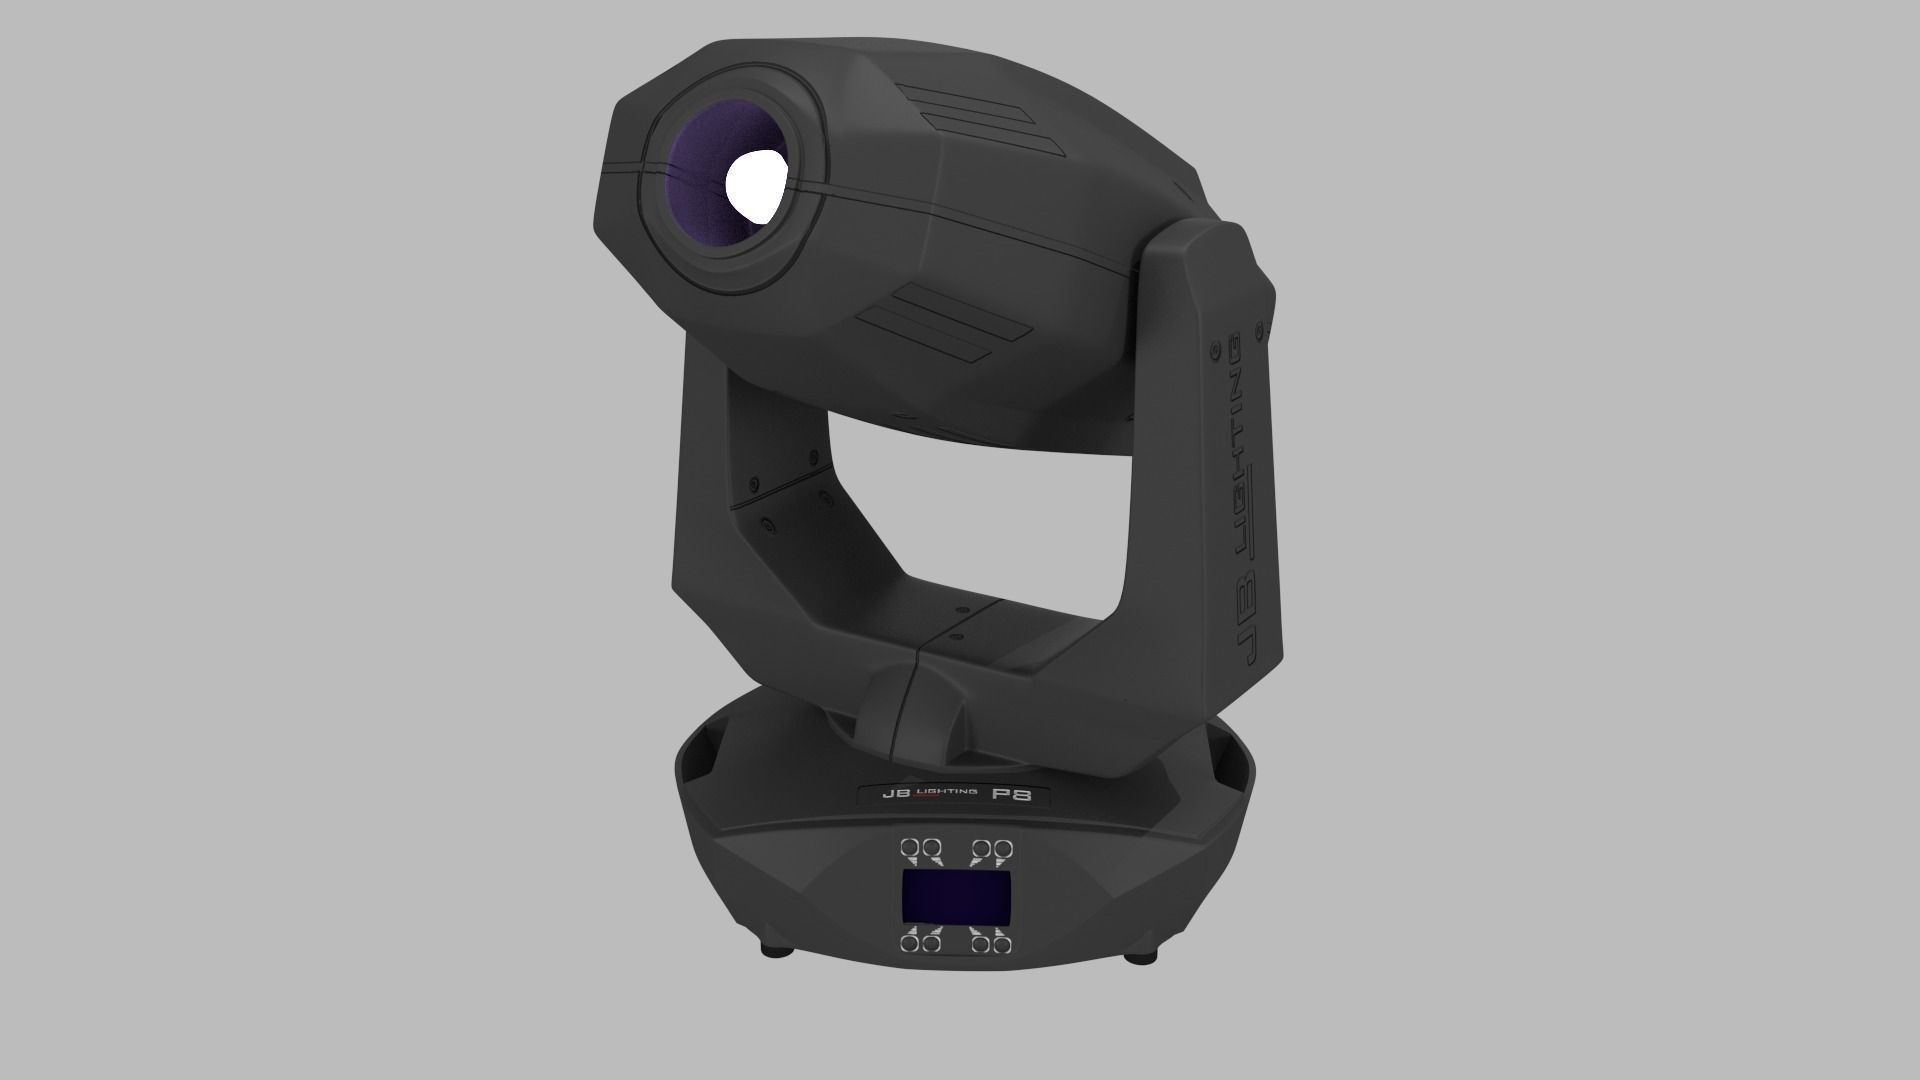 JB Lighting Varyscan P8 Moving Head